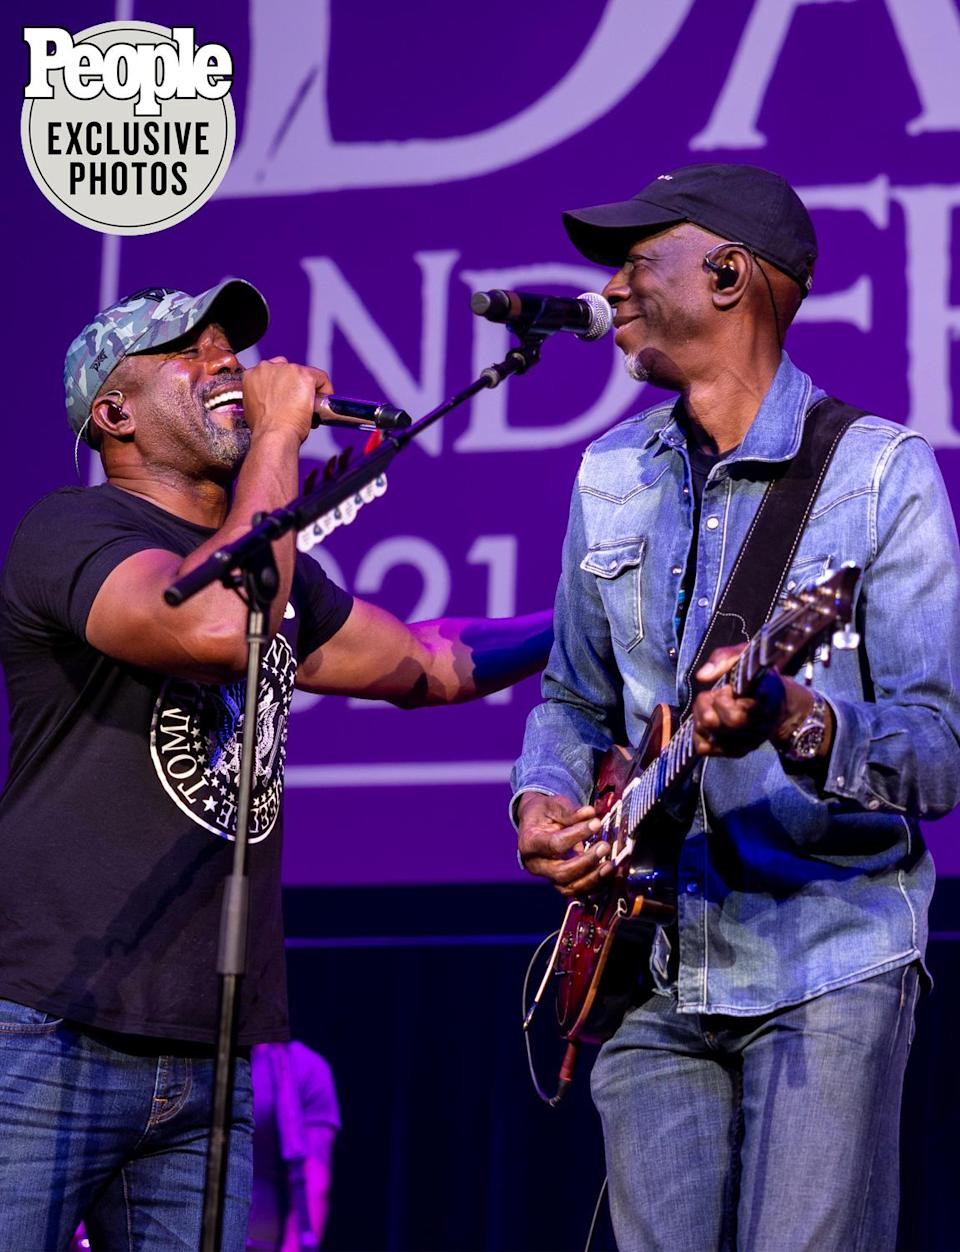 """<p>Rucker then introduced Grammy-winner Keb' Mo', who played """"Rita"""" and """"I Remember You"""" before inviting Rucker back to join him on Marvin Gaye classic """"What's Going On.""""</p>"""